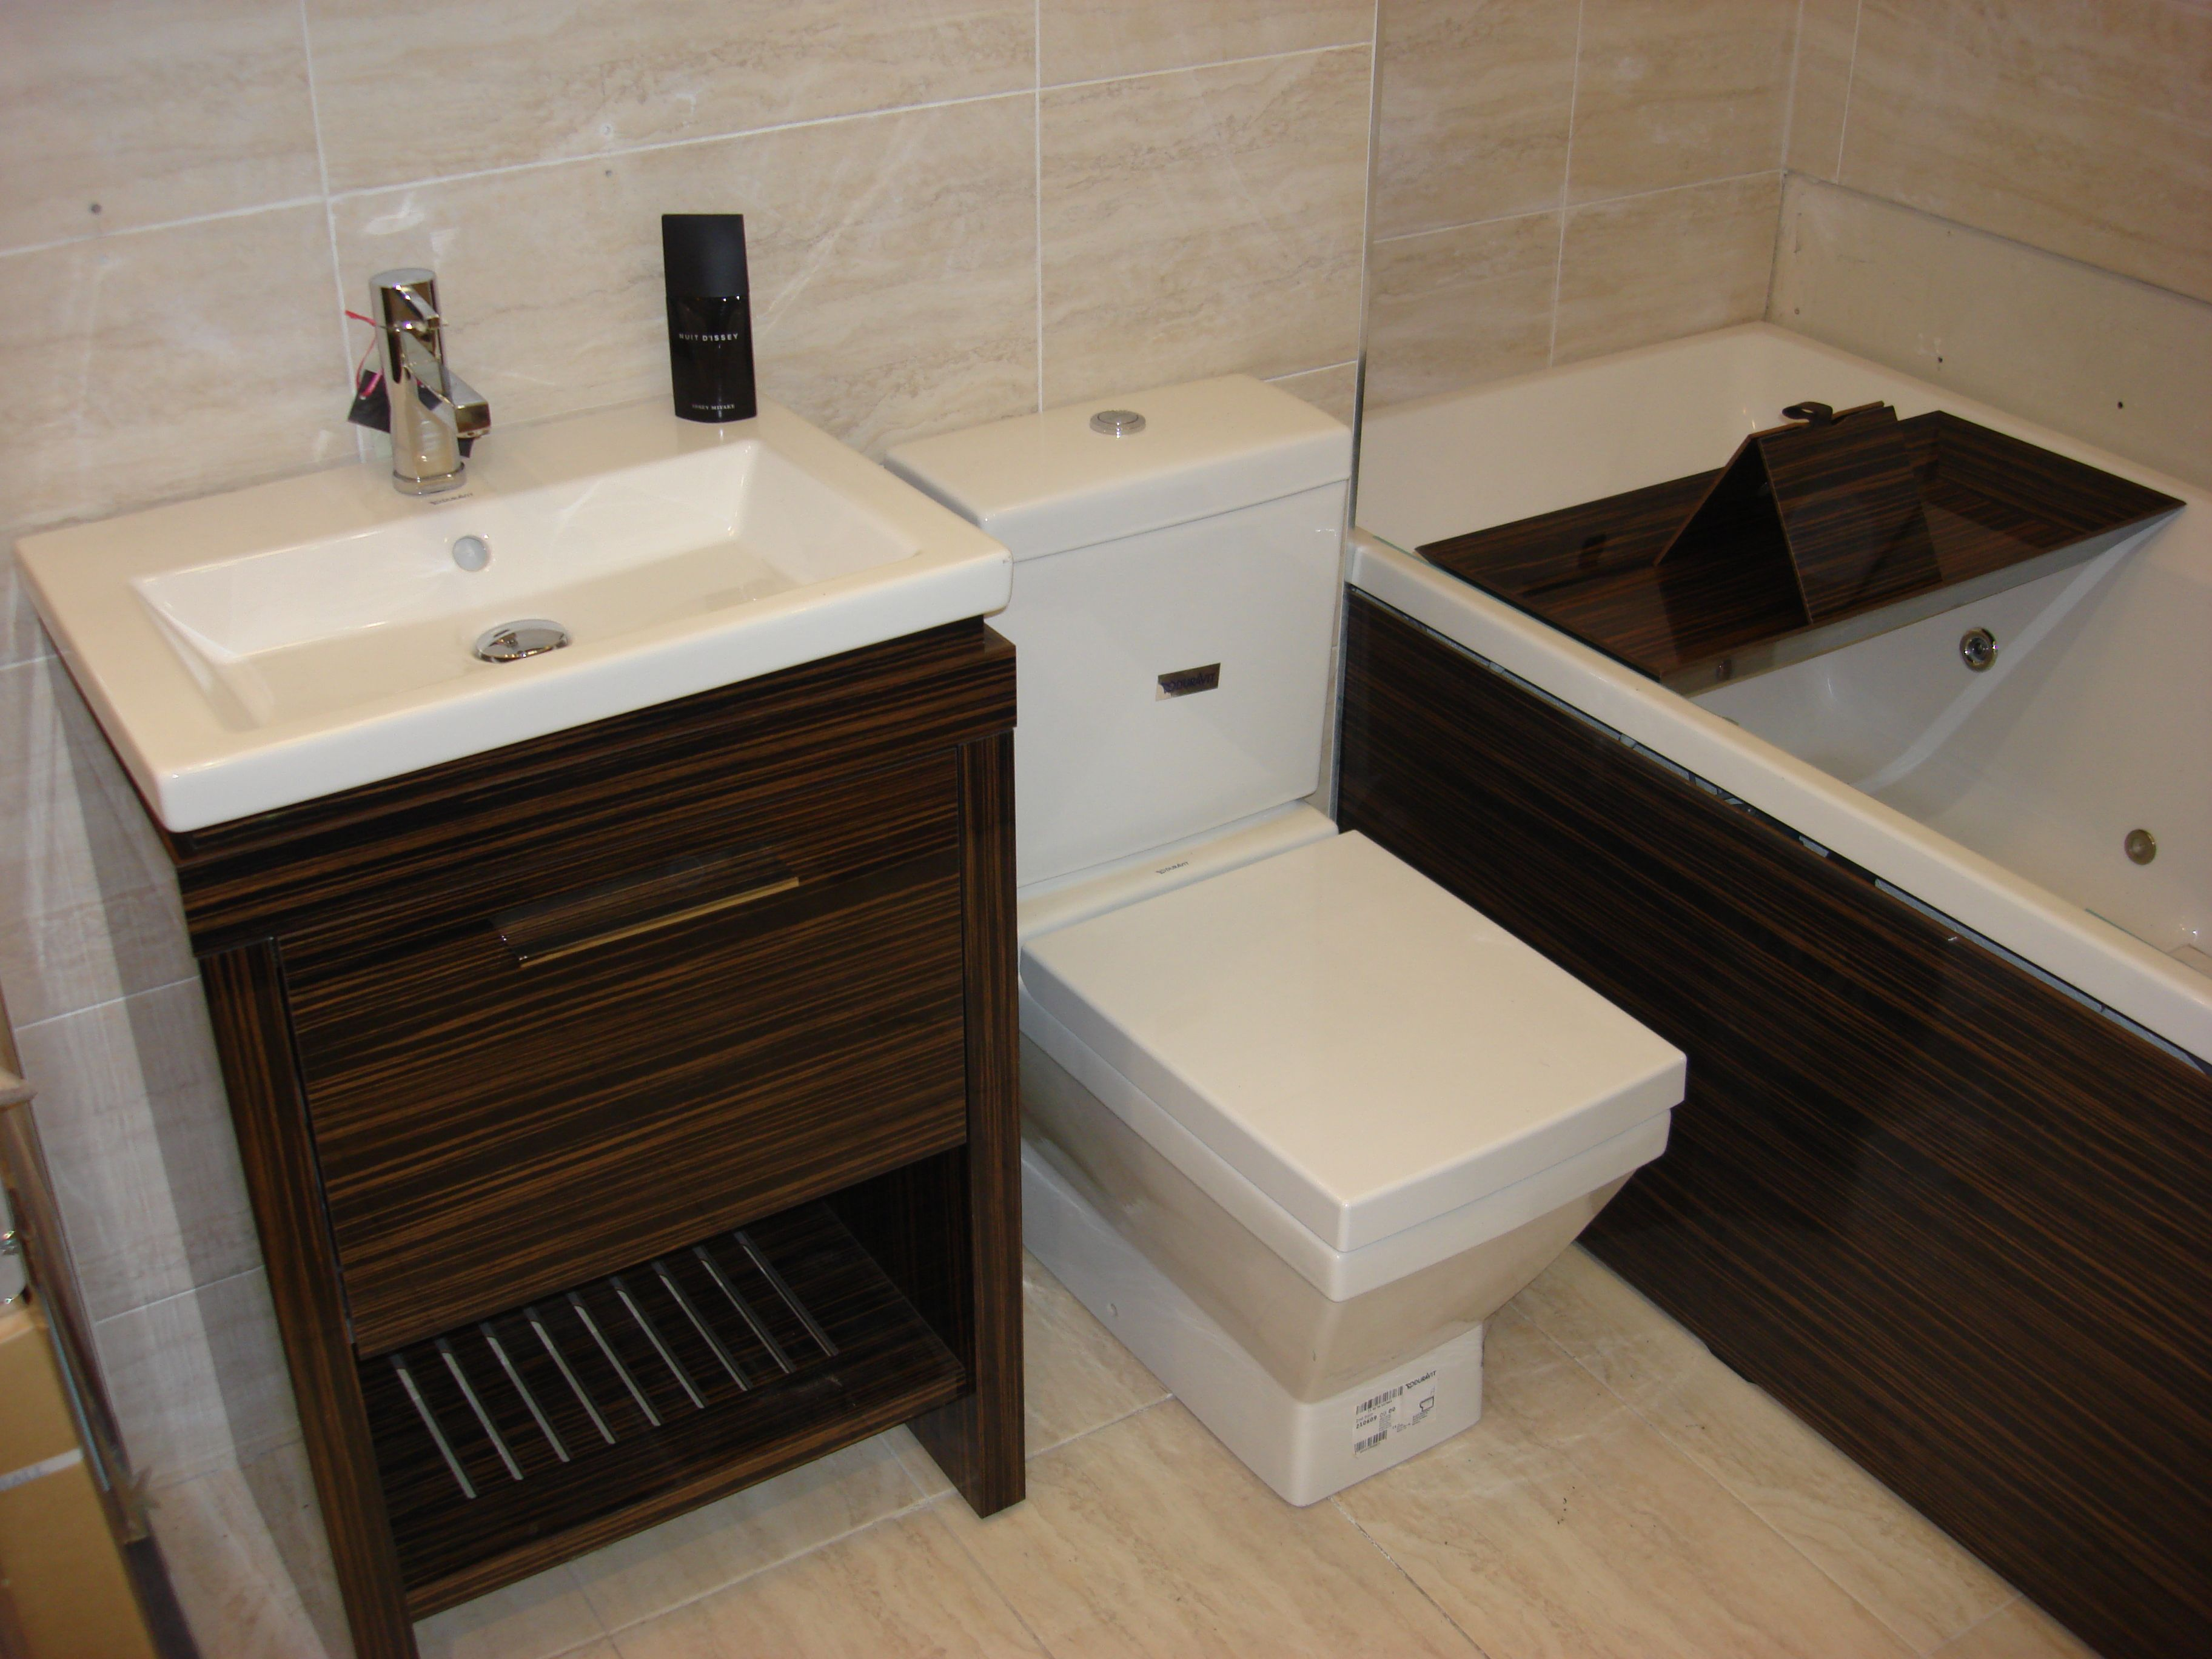 Duravit 2nd Floor 600mm X 430mm Furniture Basin And Floor